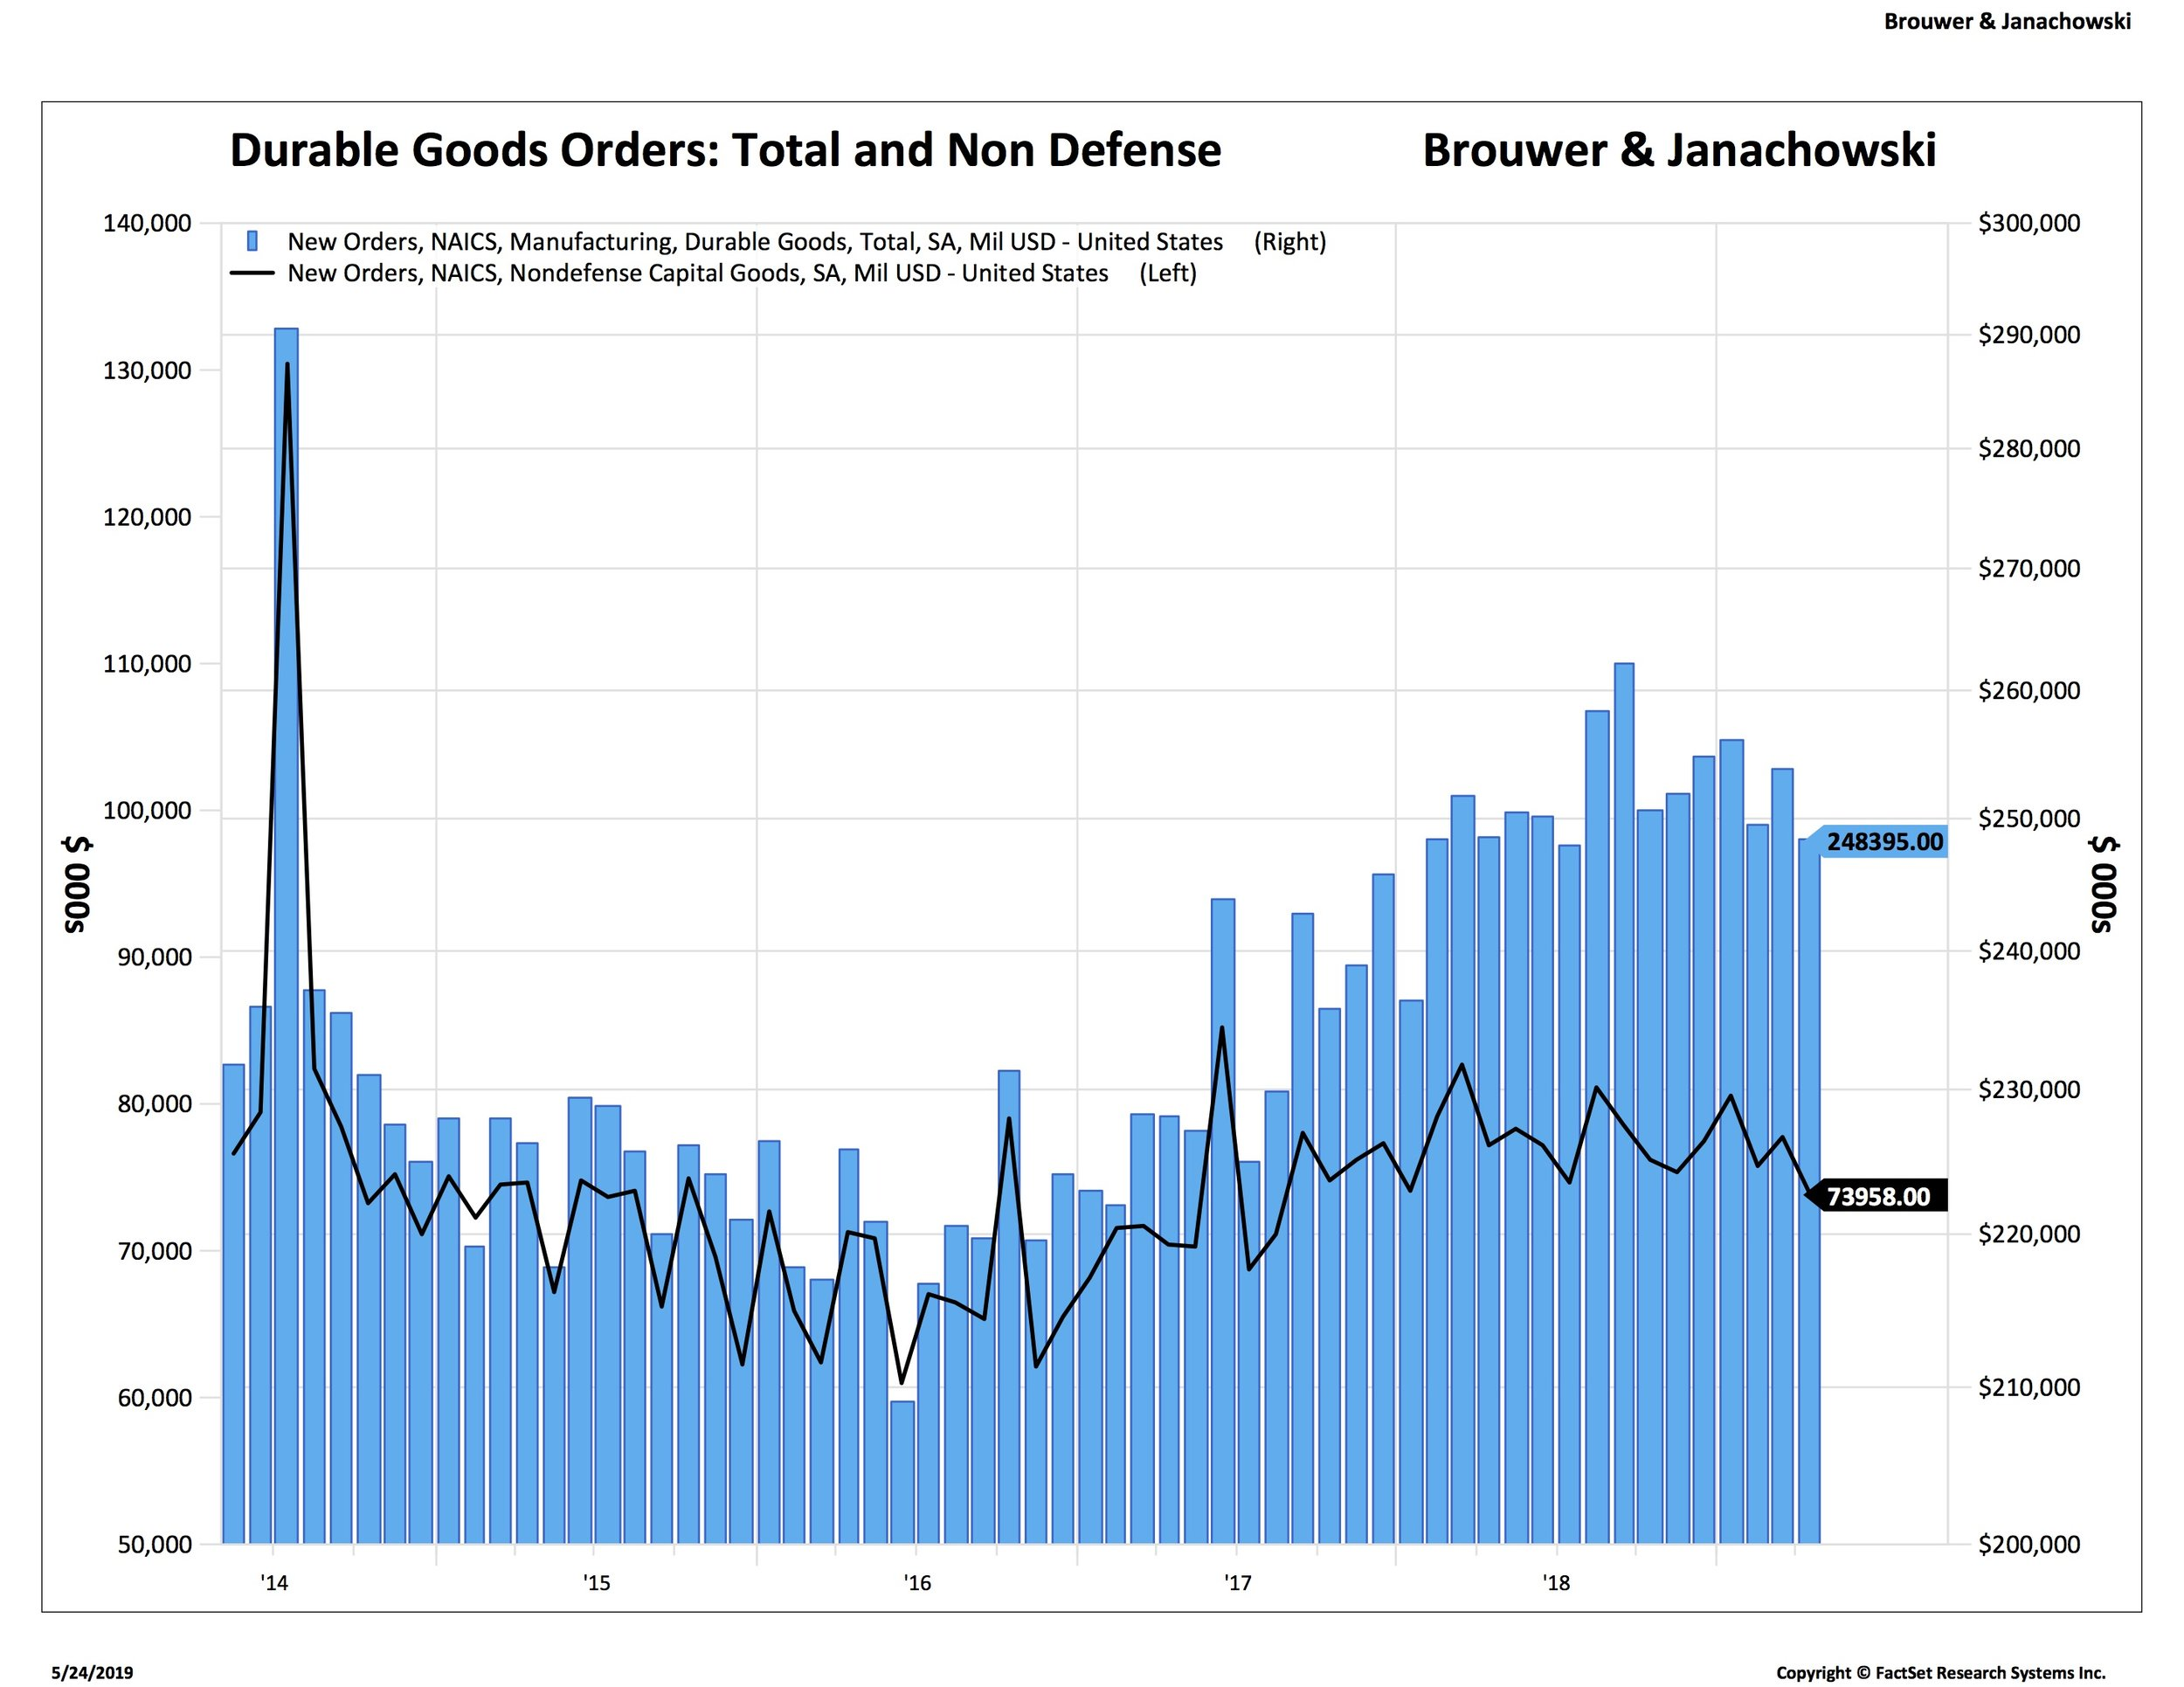 Nondefense capital goods orders down